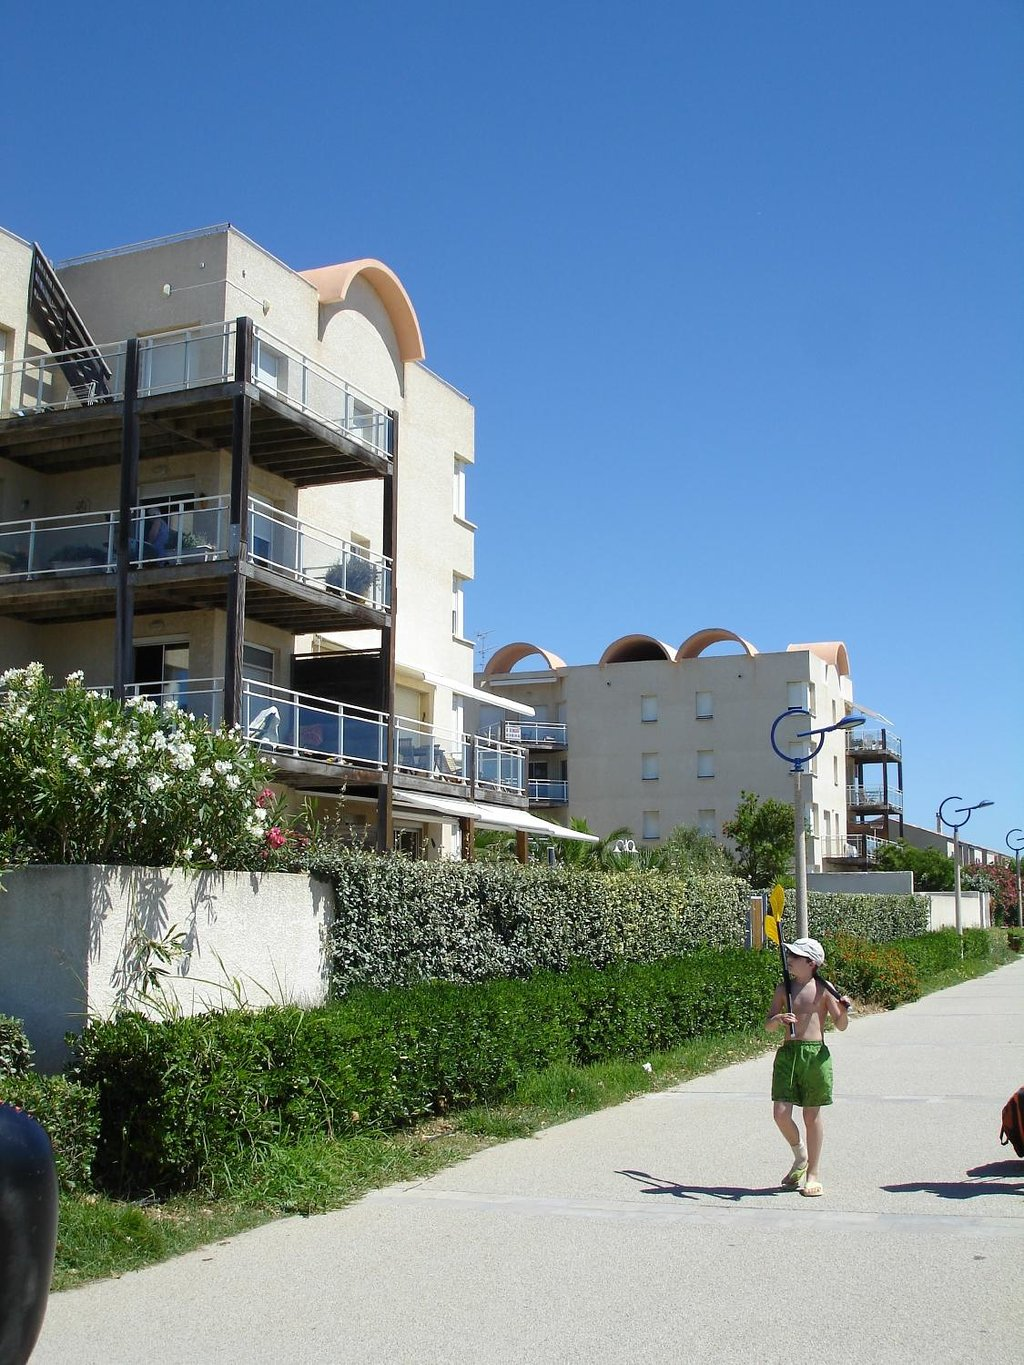 Hotel Port Beach Gruissan Laguna Beach Hotel Reviews Gruissan France Tripadvisor